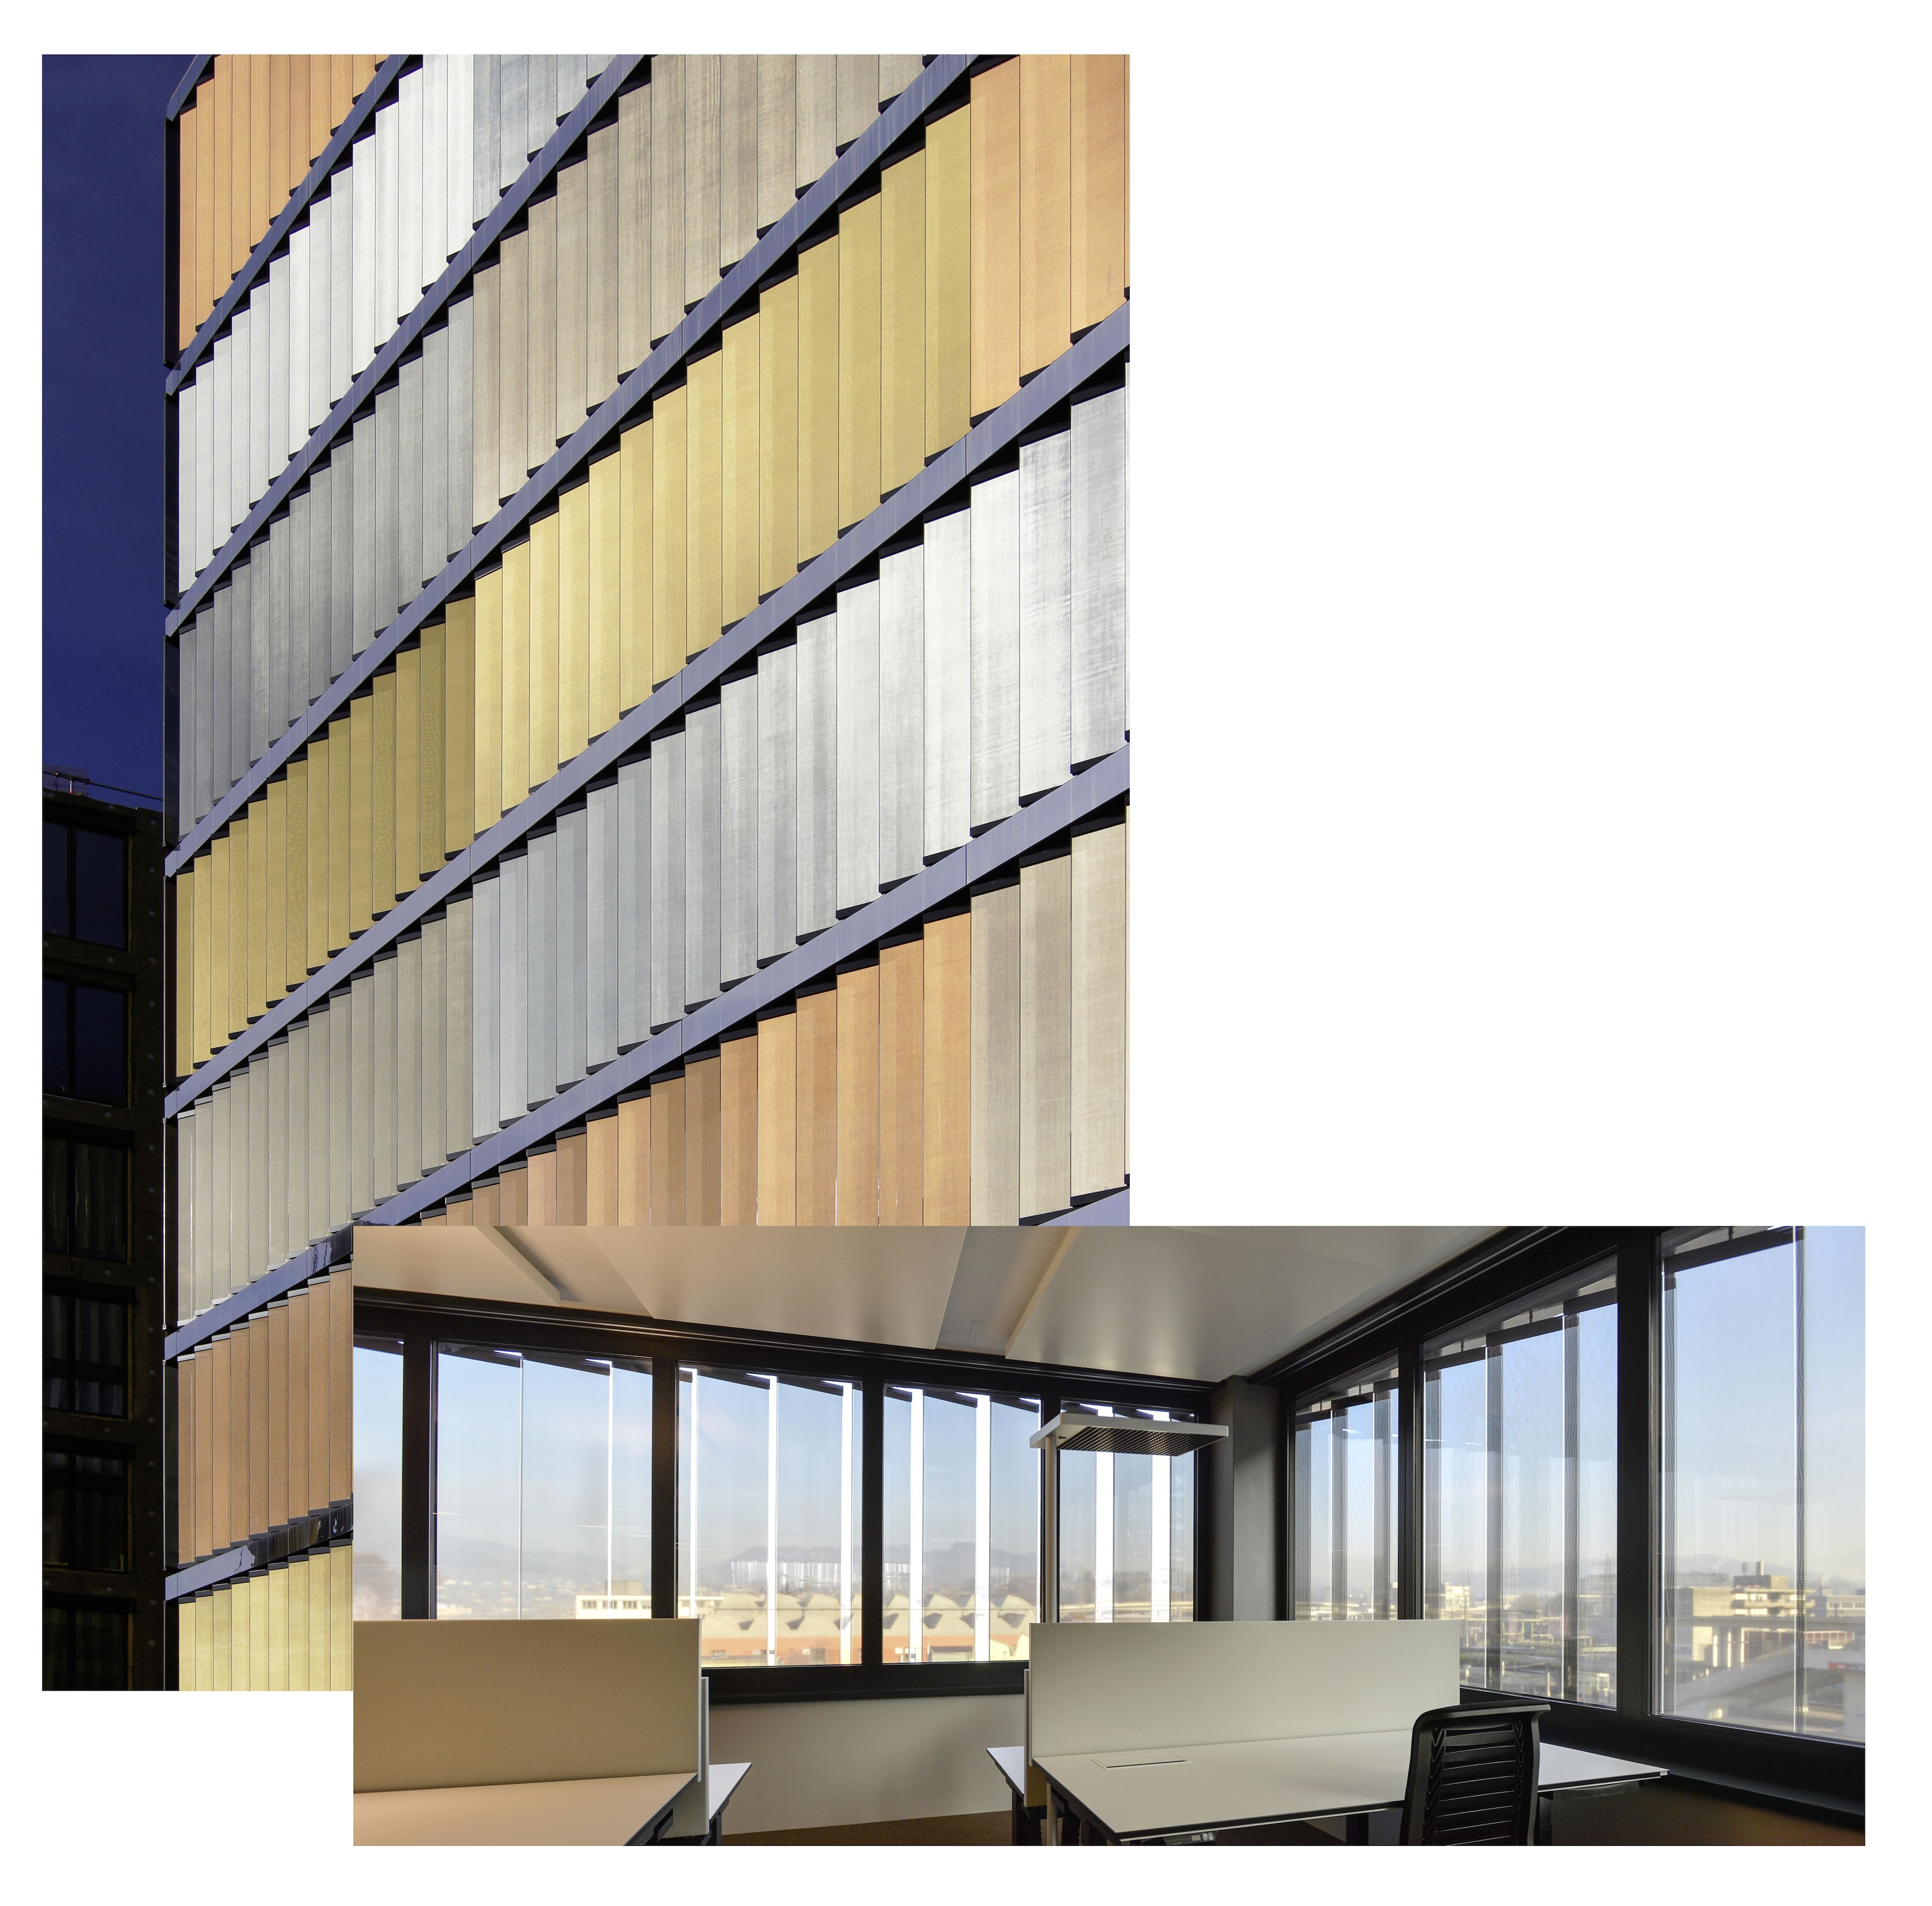 interior and exterior view of the vision fabric panels | sbb